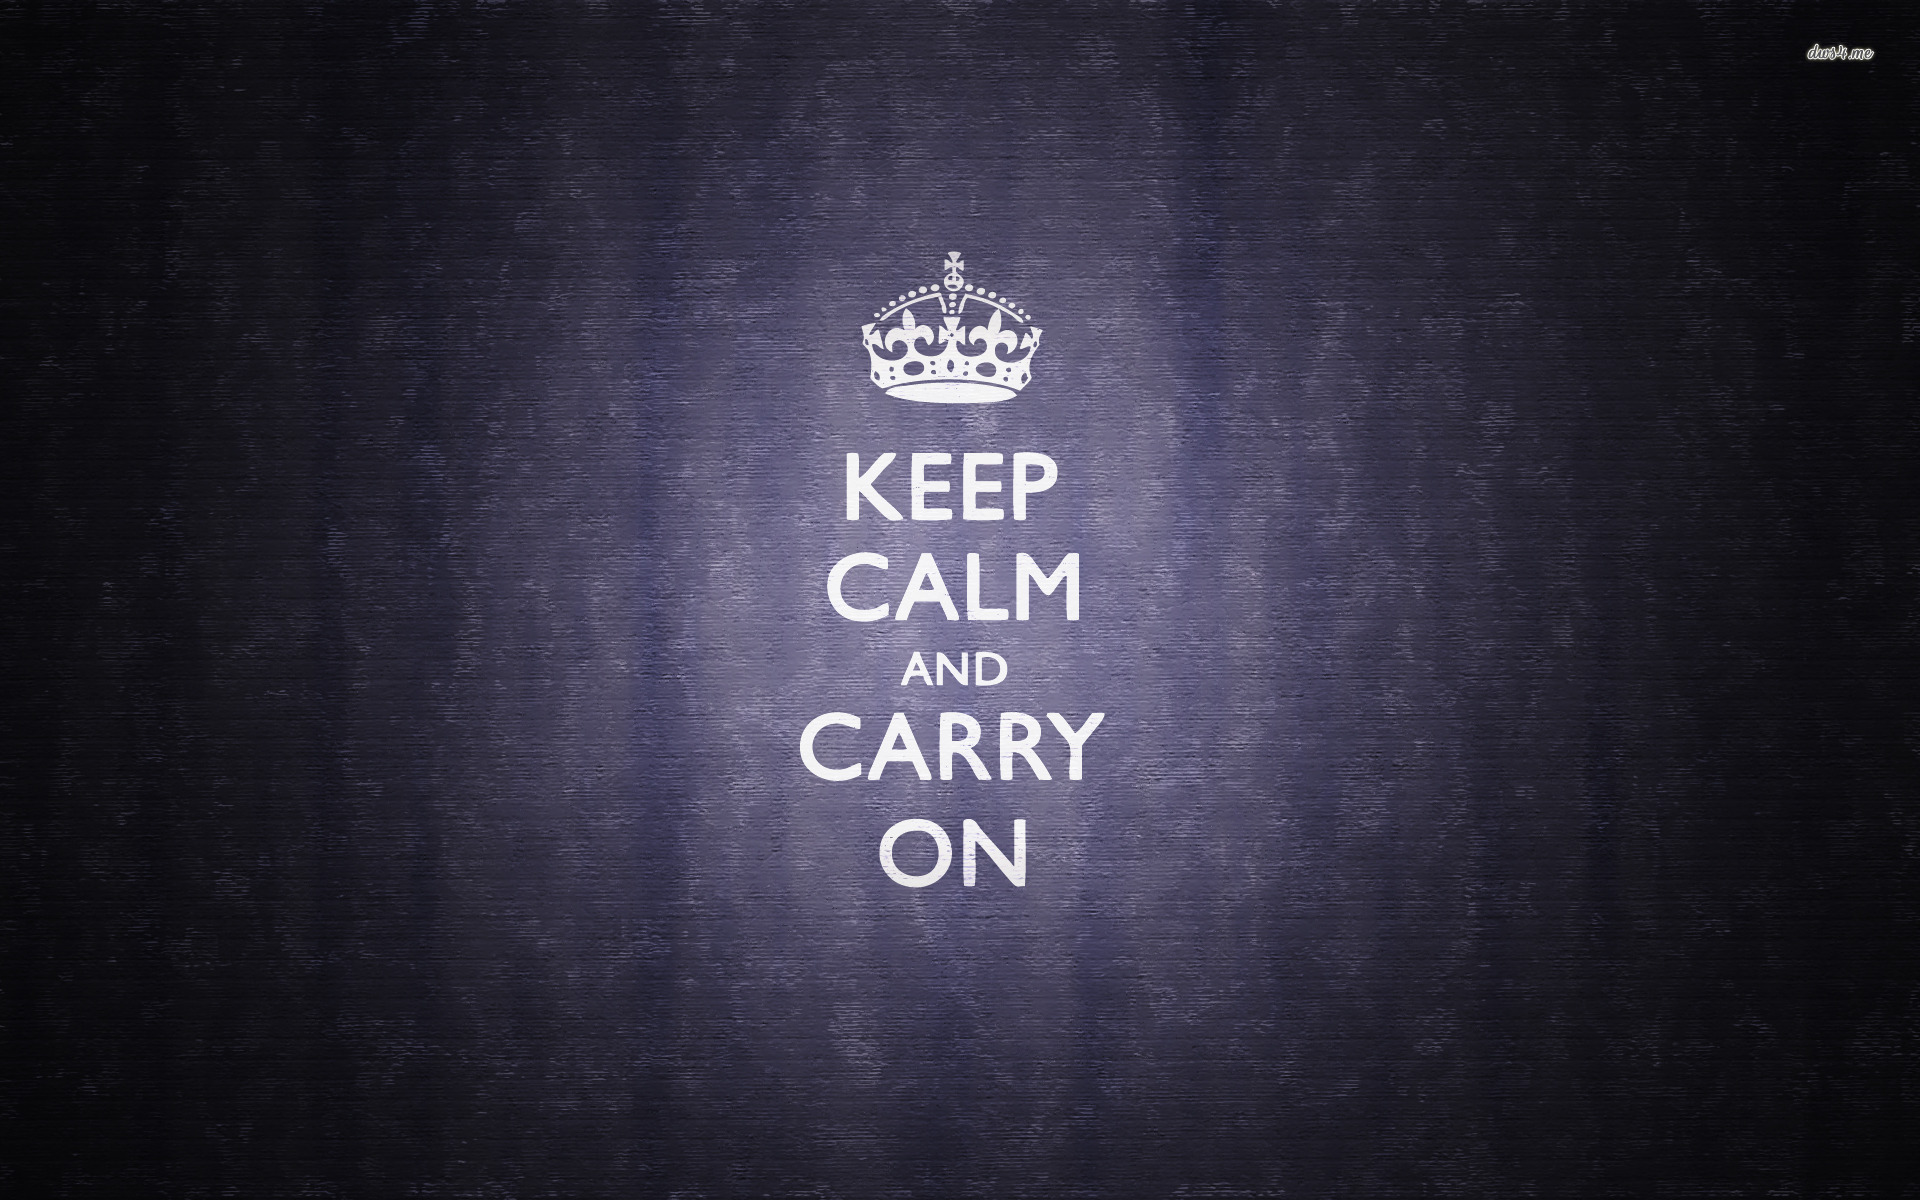 ... Keep Calm and Carry On wallpaper 1920x1200 ...